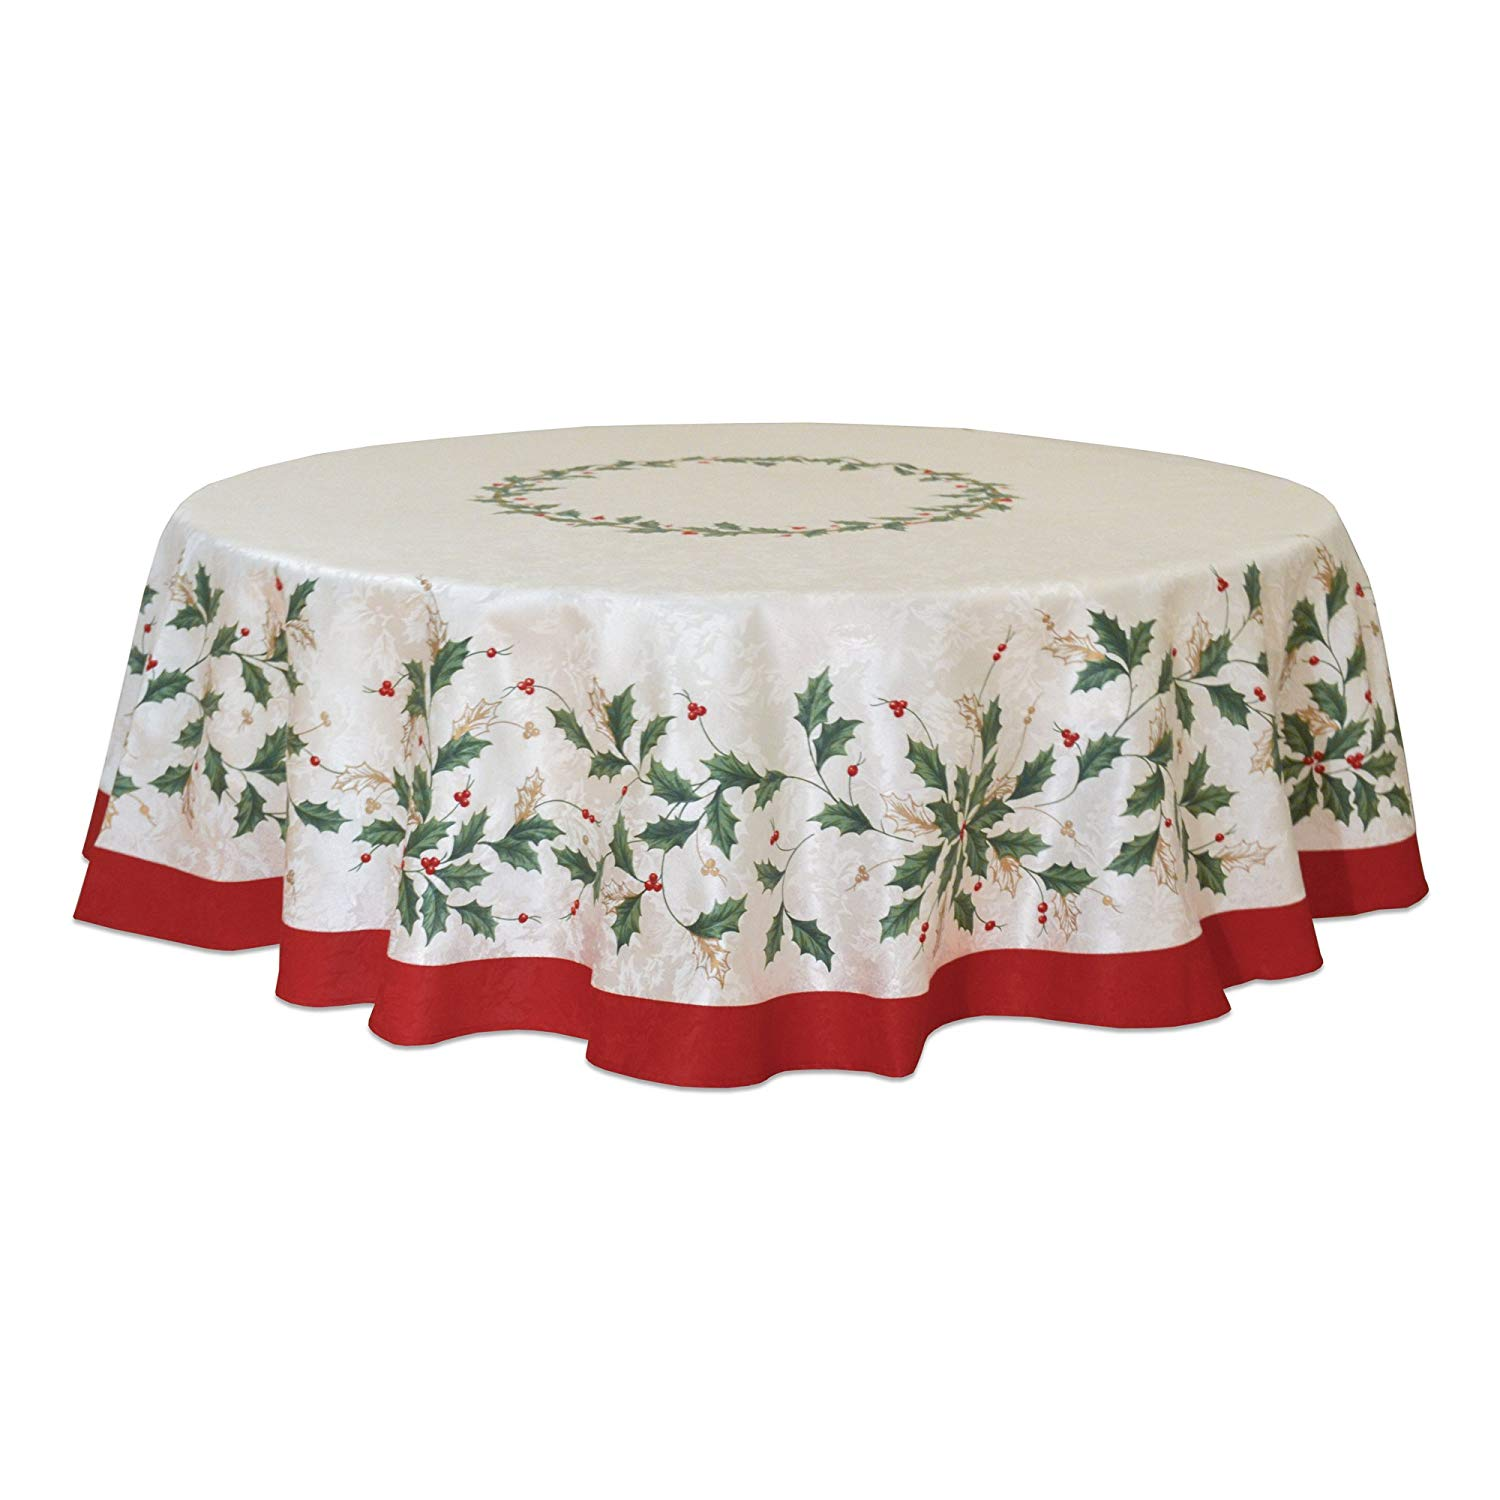 lenox golden holly inch round tablecloth home kitchen accent pier one imports table and chairs farmhouse door modern furniture distressed wood coffee southern enterprises mirage